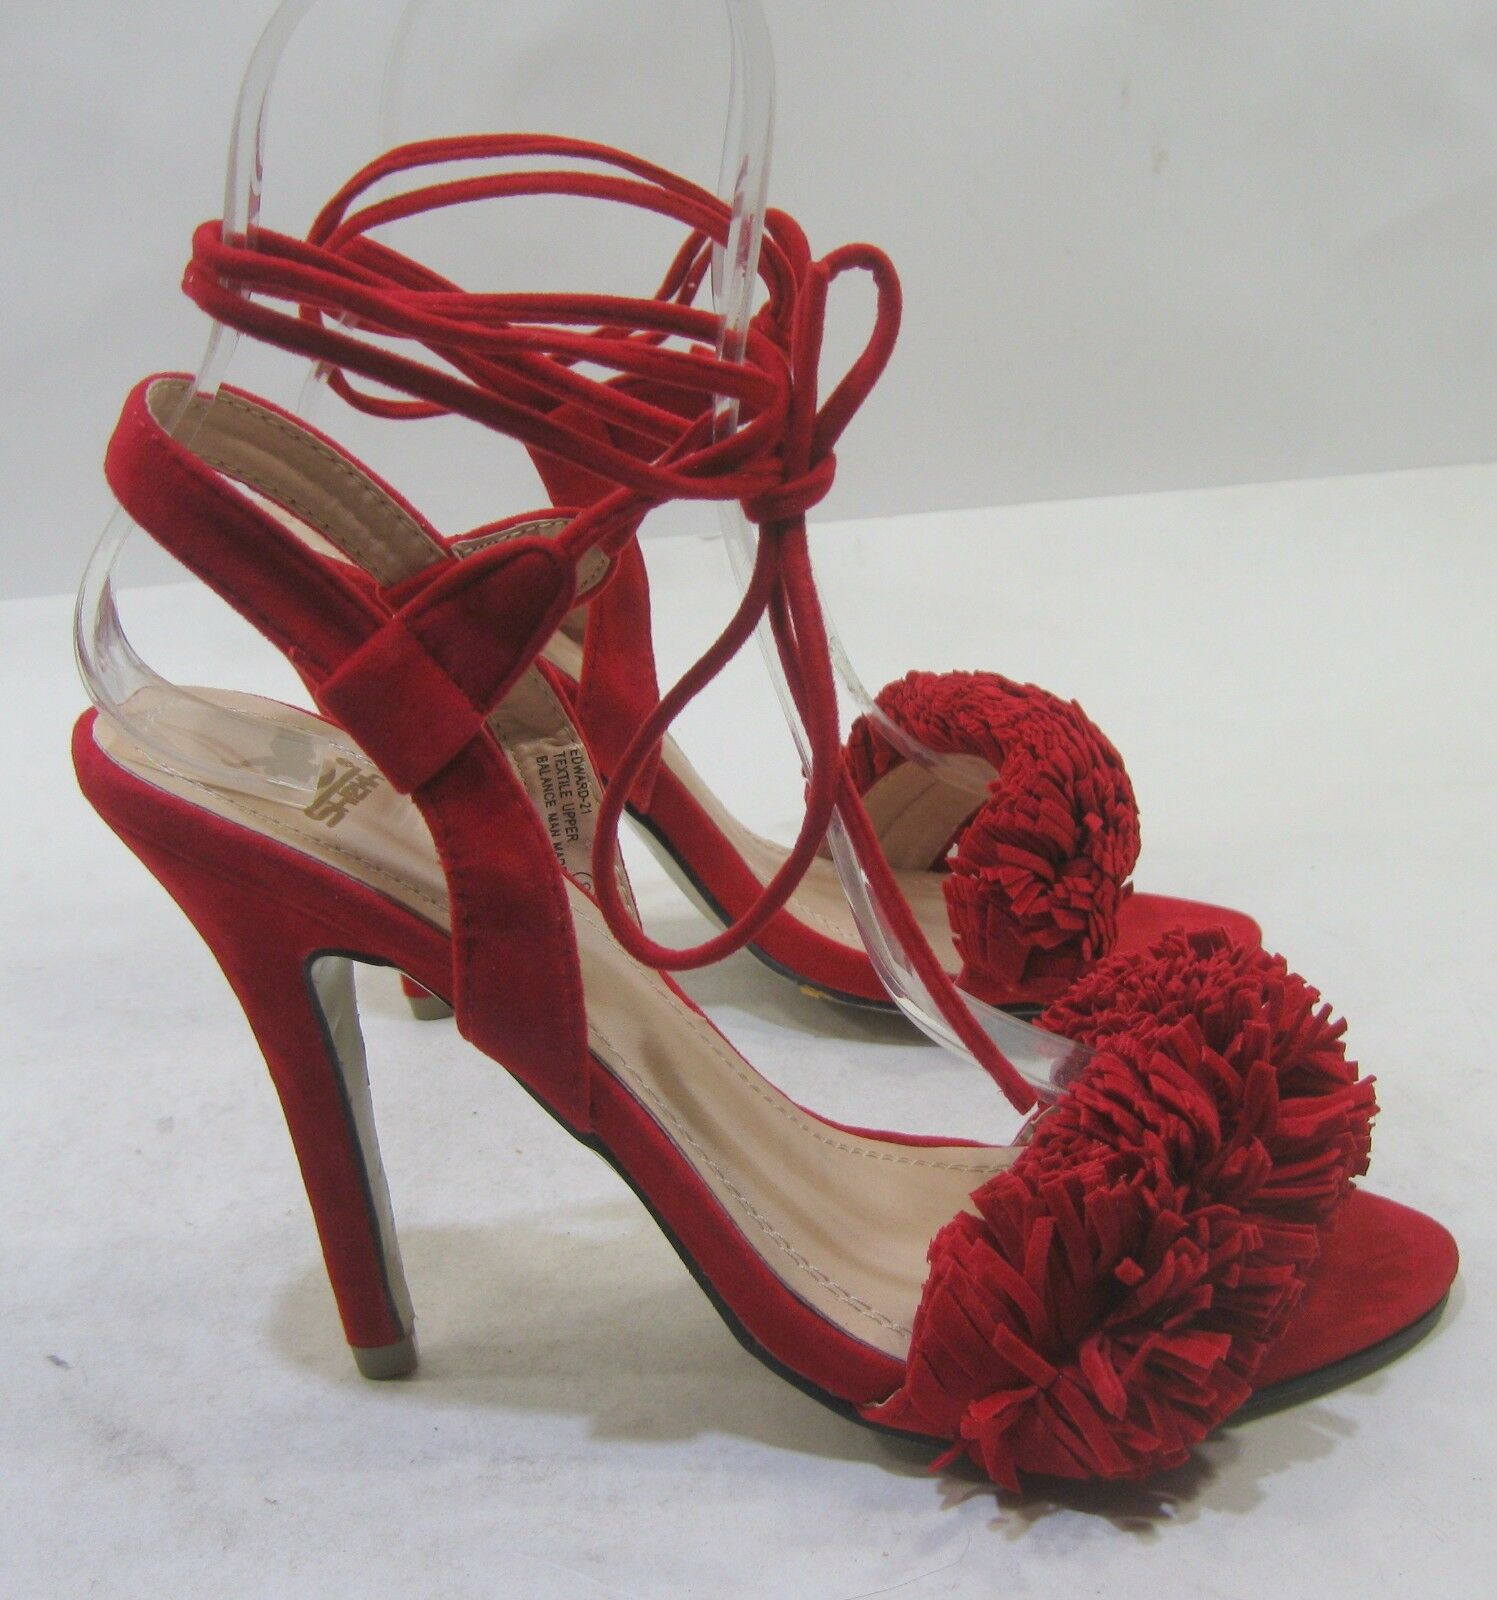 NEW LADIES Red 4.5  Stiletto High Heel Open Toe Tie Up Sexy shoes Size 9.5